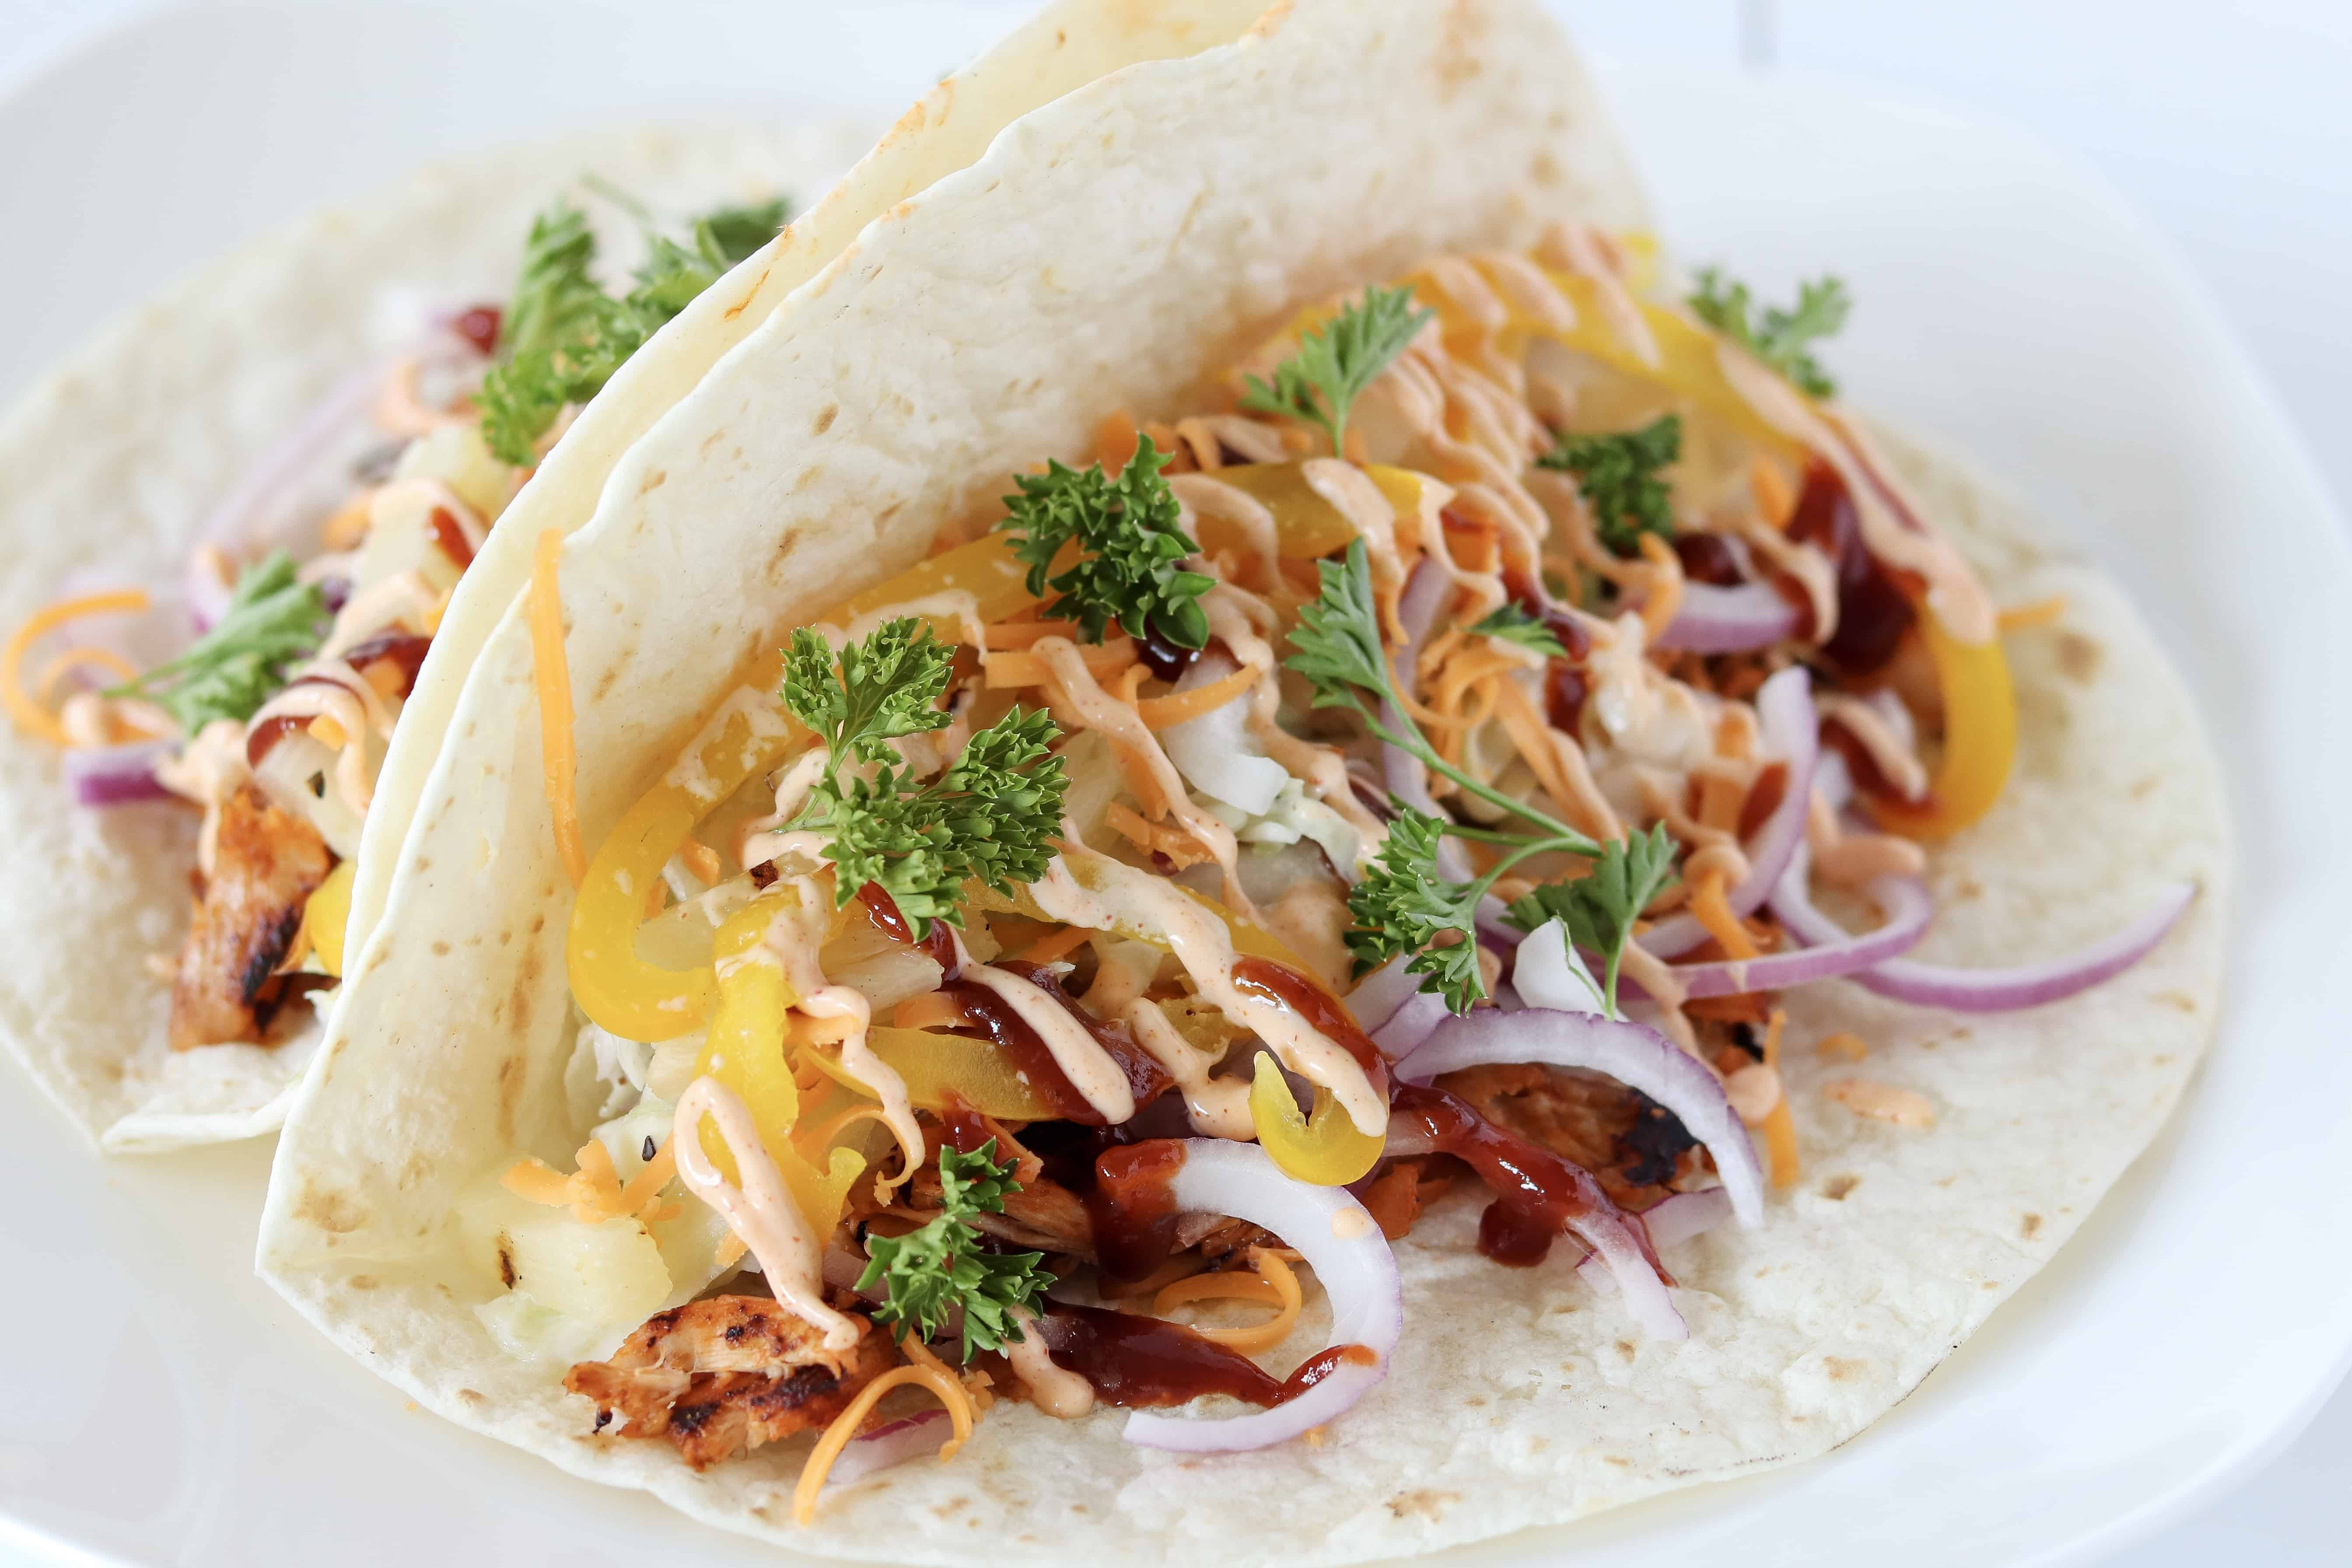 Chipotle Pineapple Chicken Tacos